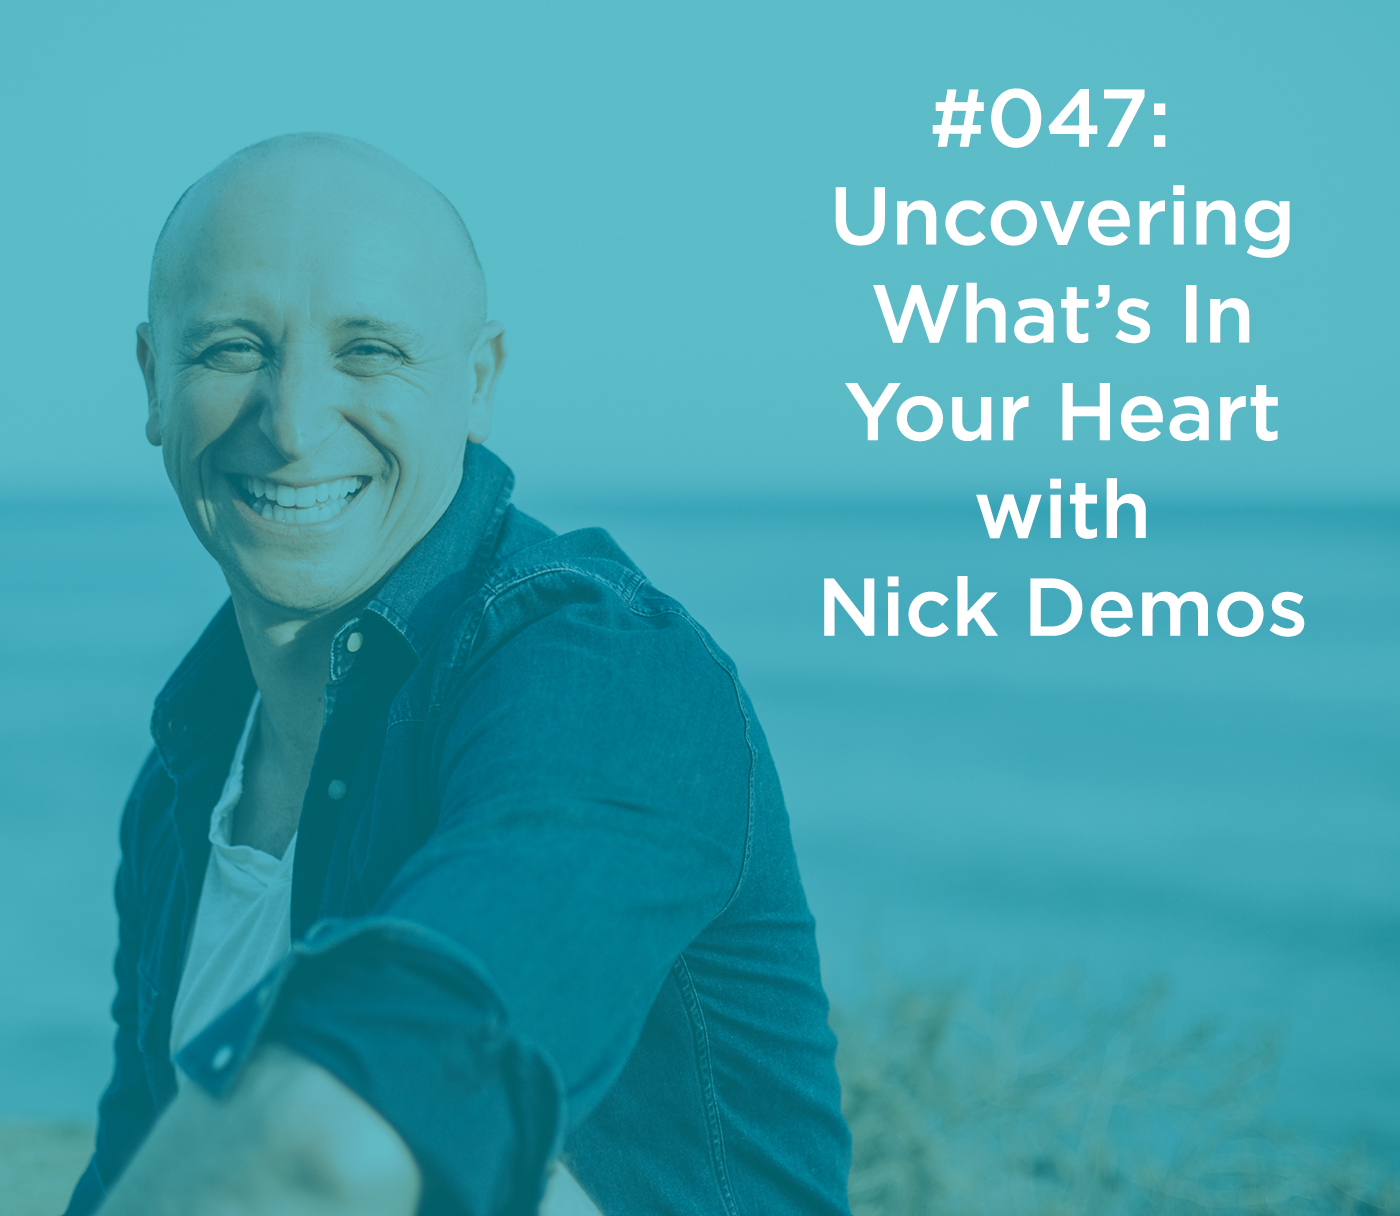 Uncovering What's In Your Heart with Nick Demos